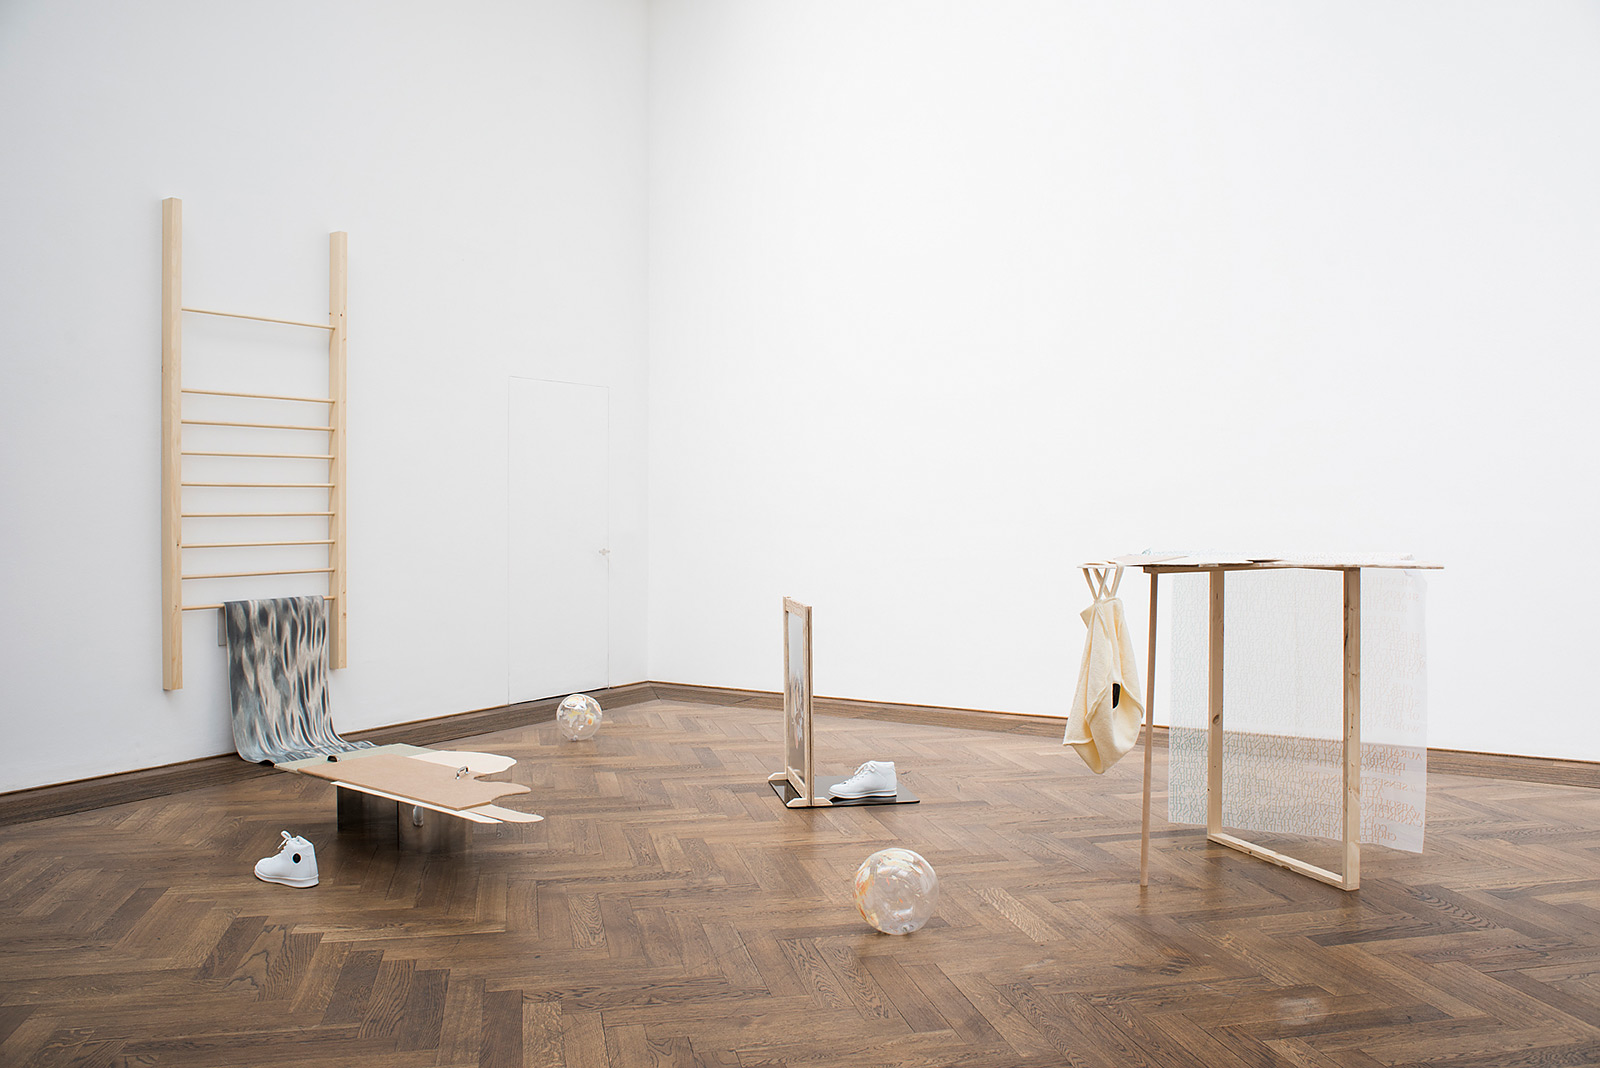 Marc Norbert Hörler «new area: parcours for the dissolution of the body»  | Institut Kunst, Diplom Bachelor 2016